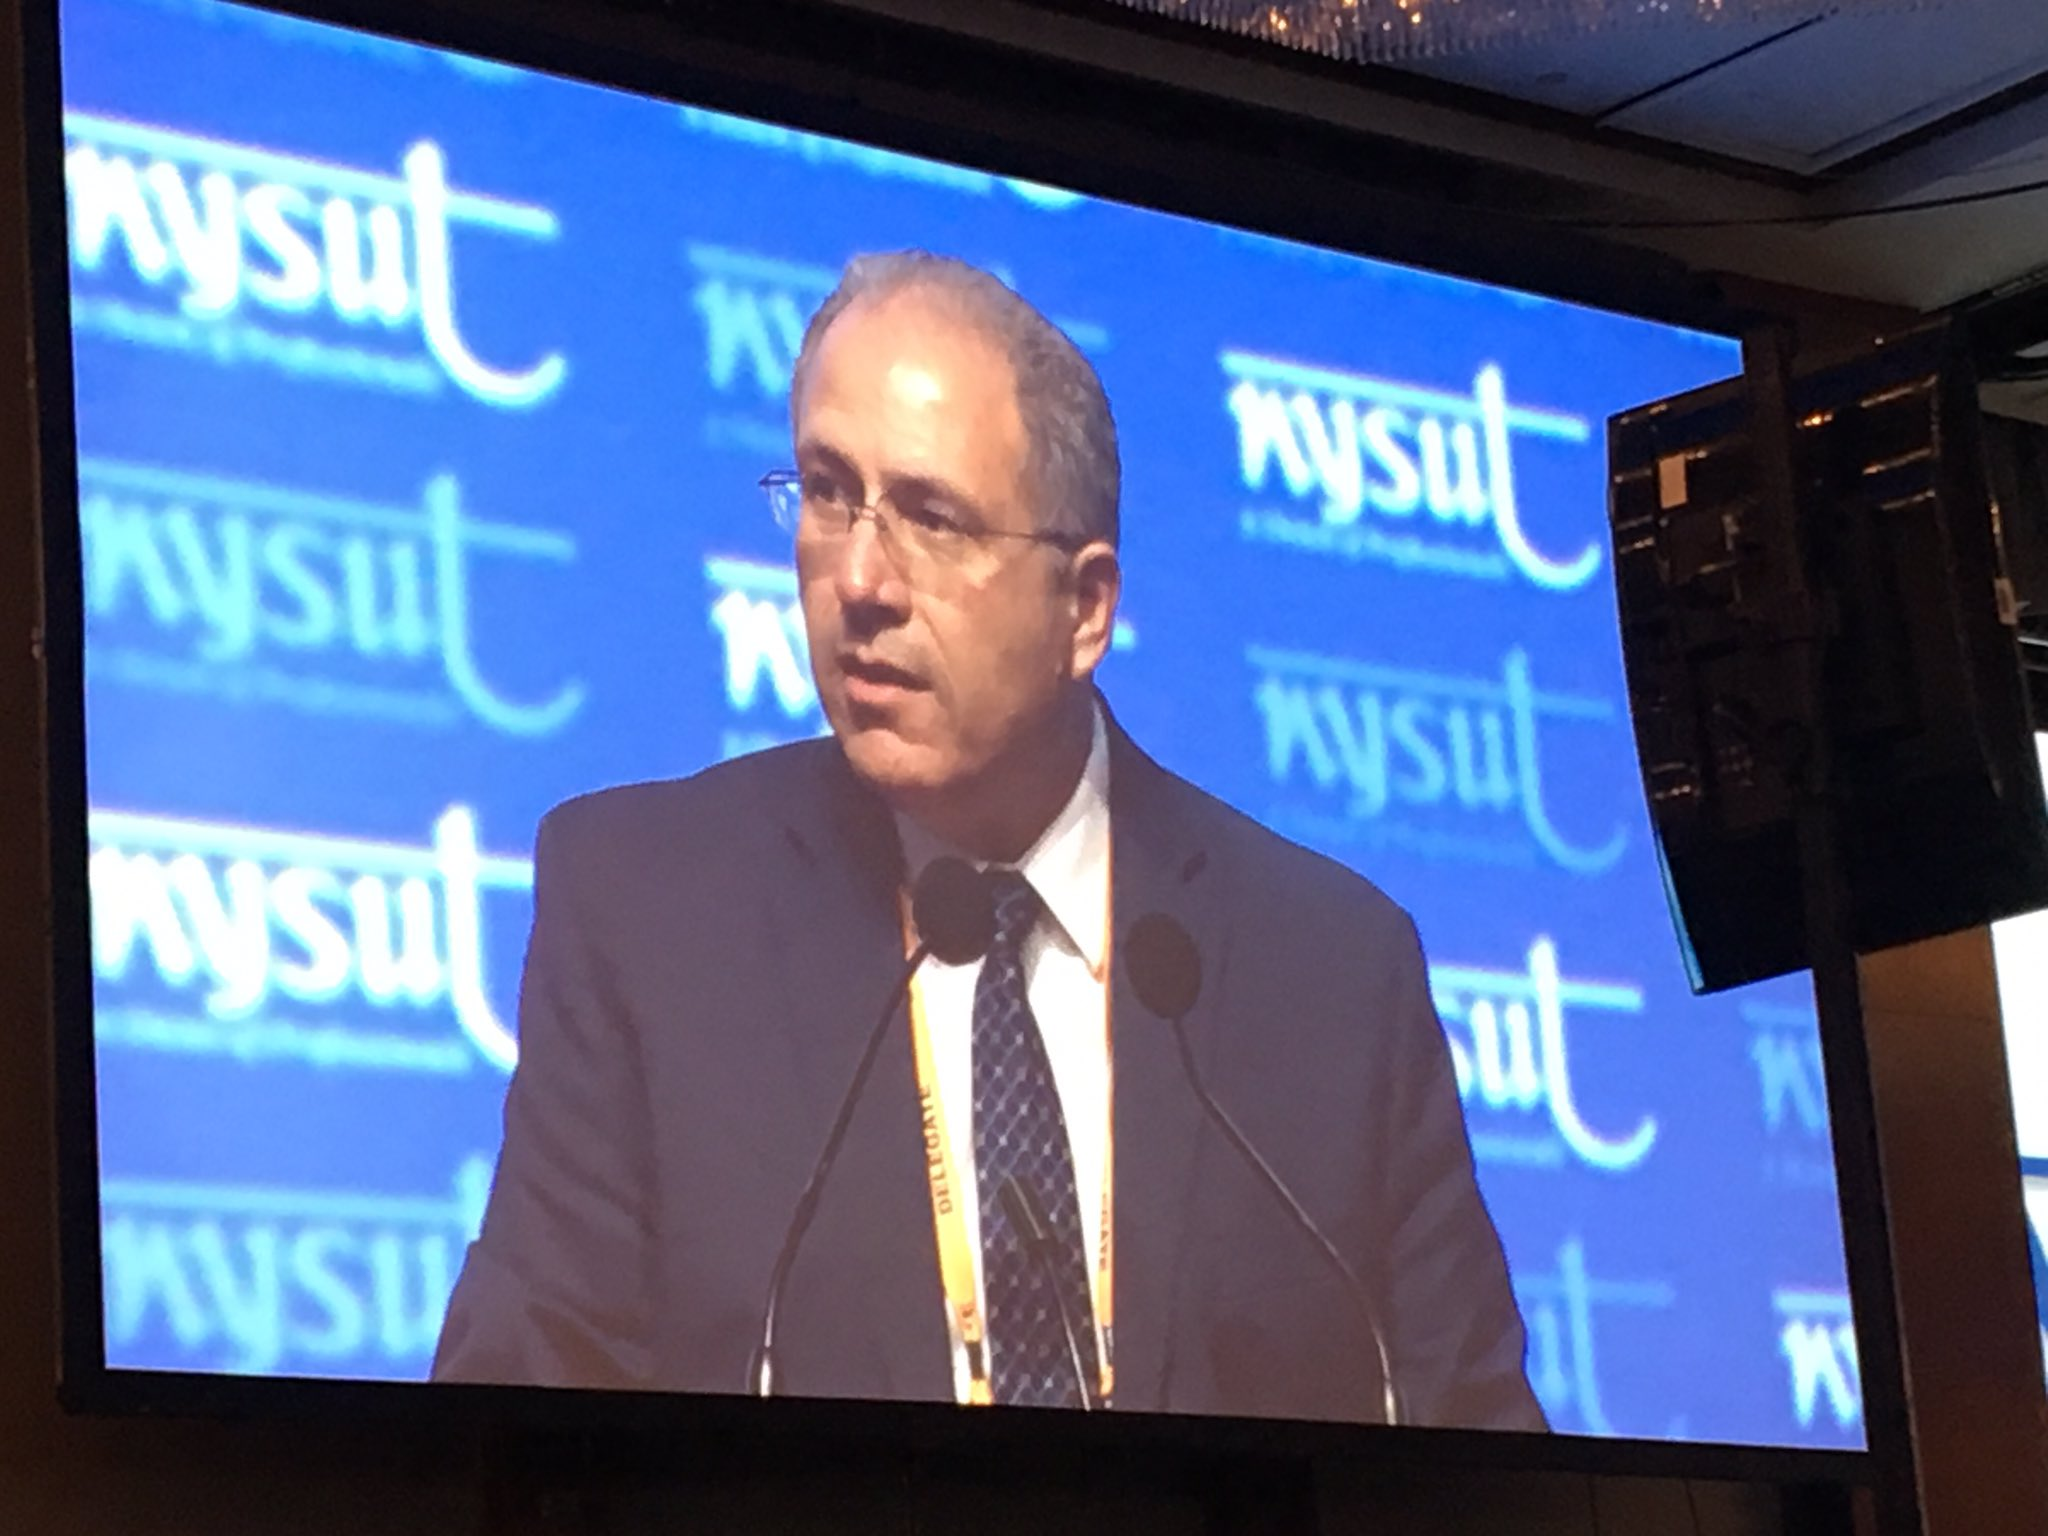 Congratulations to @nysut President-Elect @AndyPallotta - we look forward to working with you on labor, advocacy, and social justice. https://t.co/TObEAJzXxS